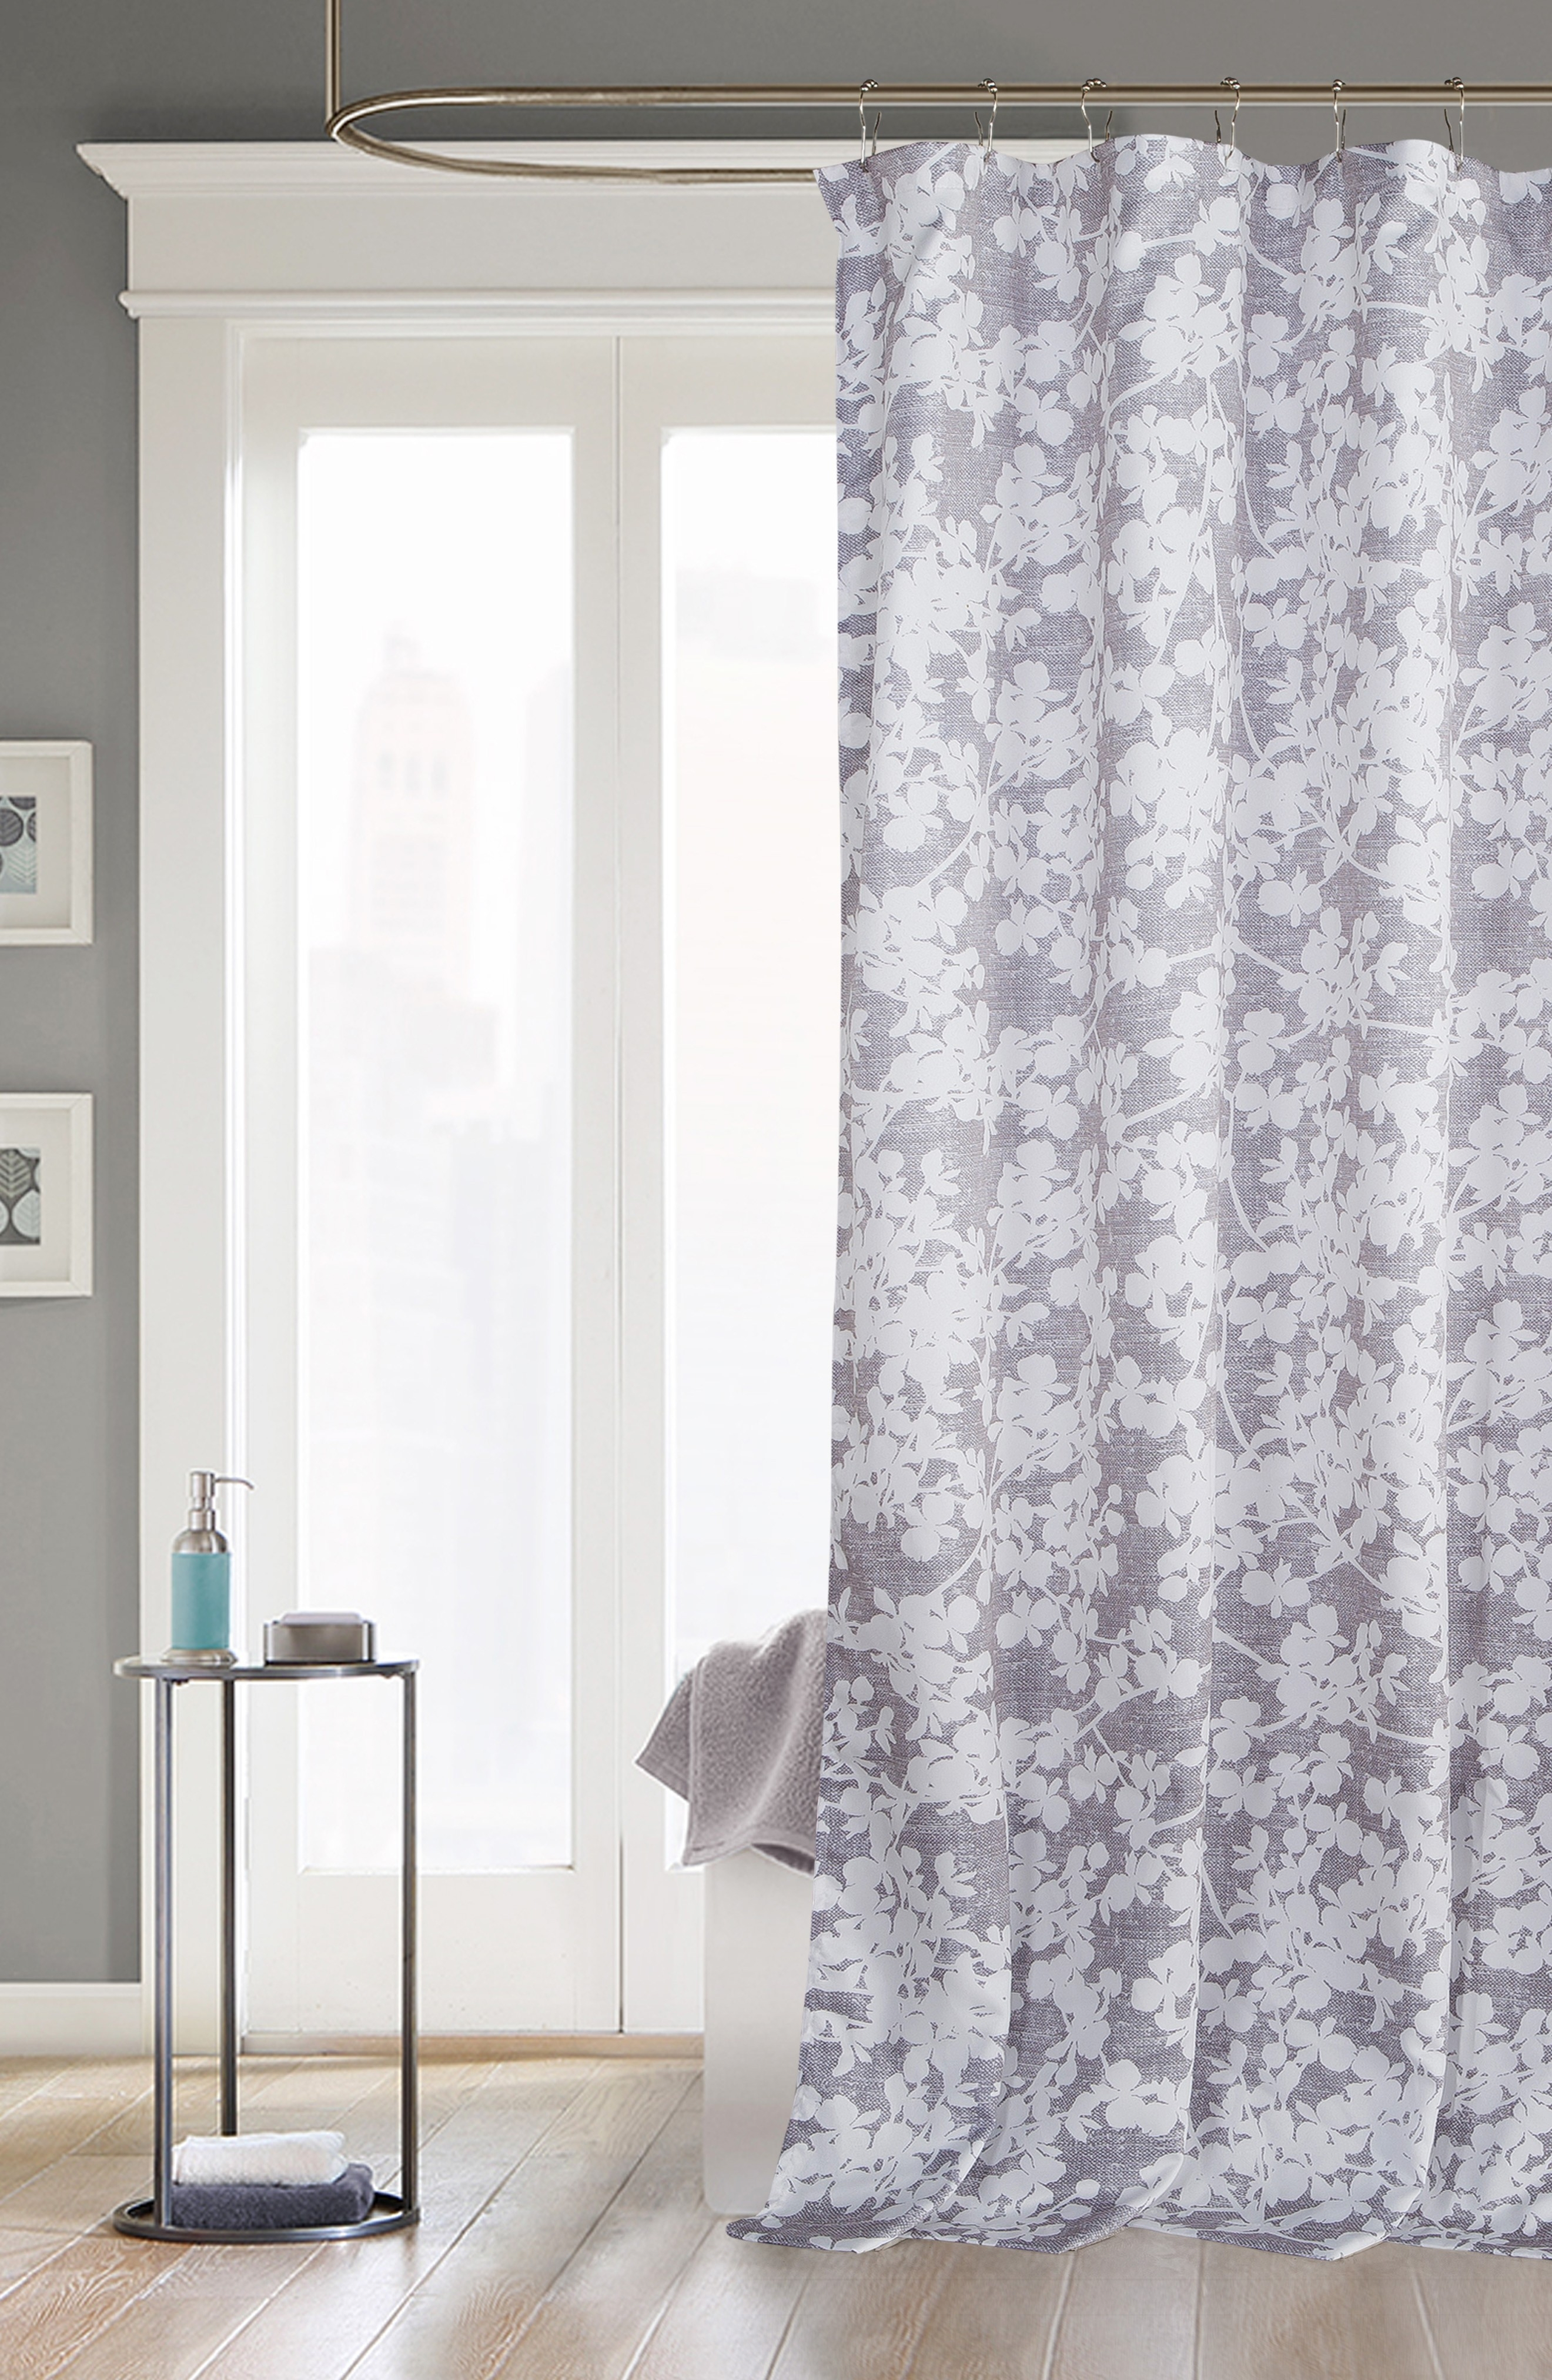 Average Length Of A Shower Curtain With Regard To Measurements 2640 X 4048